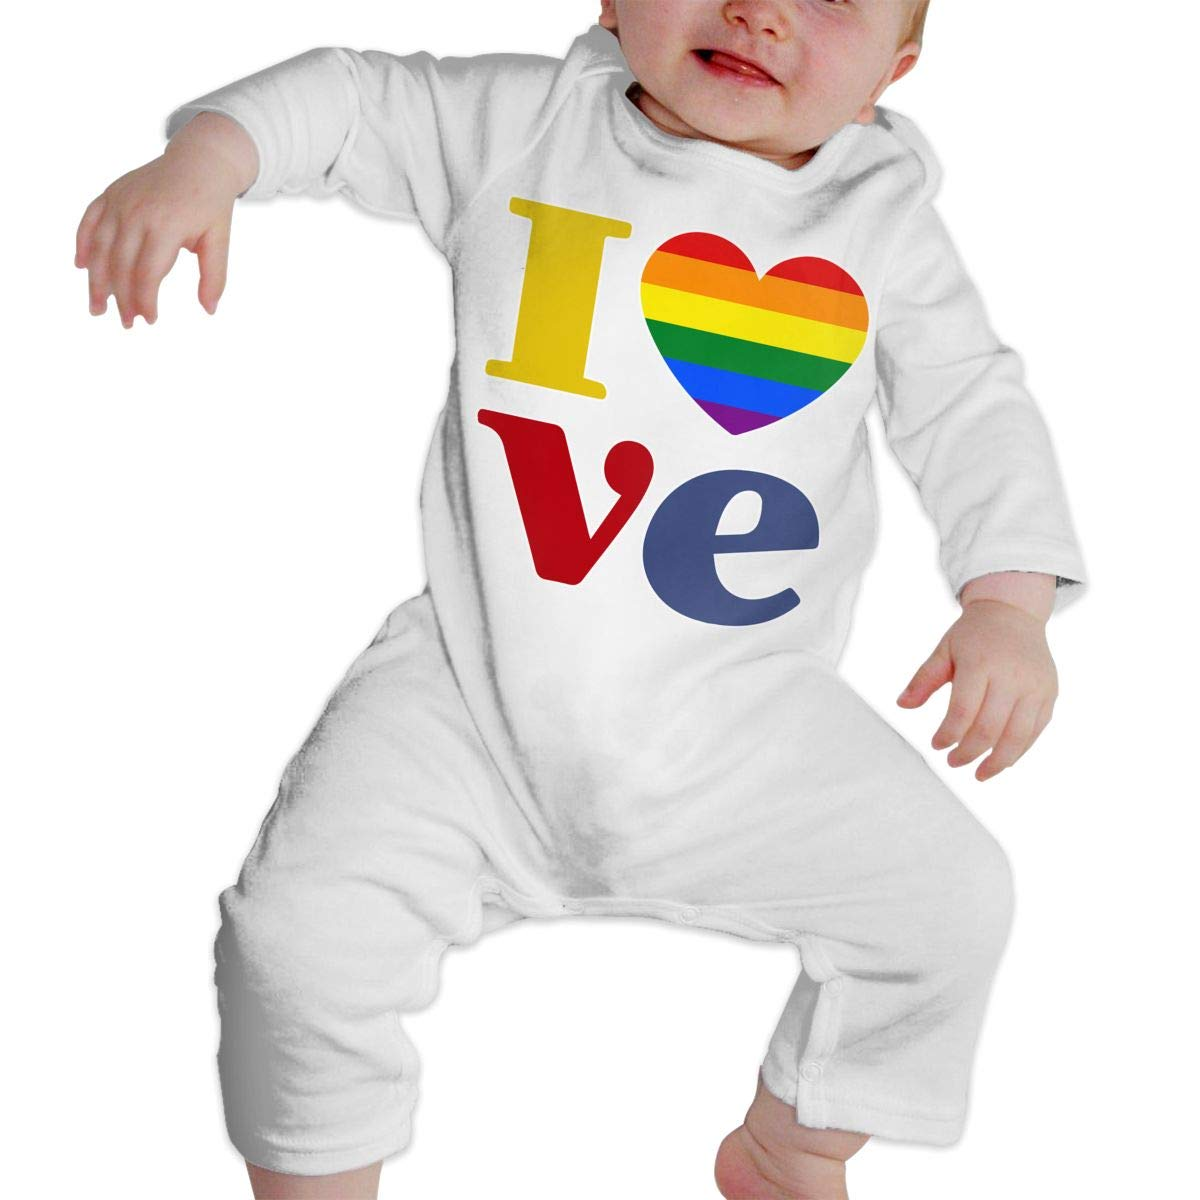 Newborn Baby Boys Girls Cotton Long Sleeve LGBT Gay Pride Love-1 Baby Clothes Funny Printed Romper Clothes